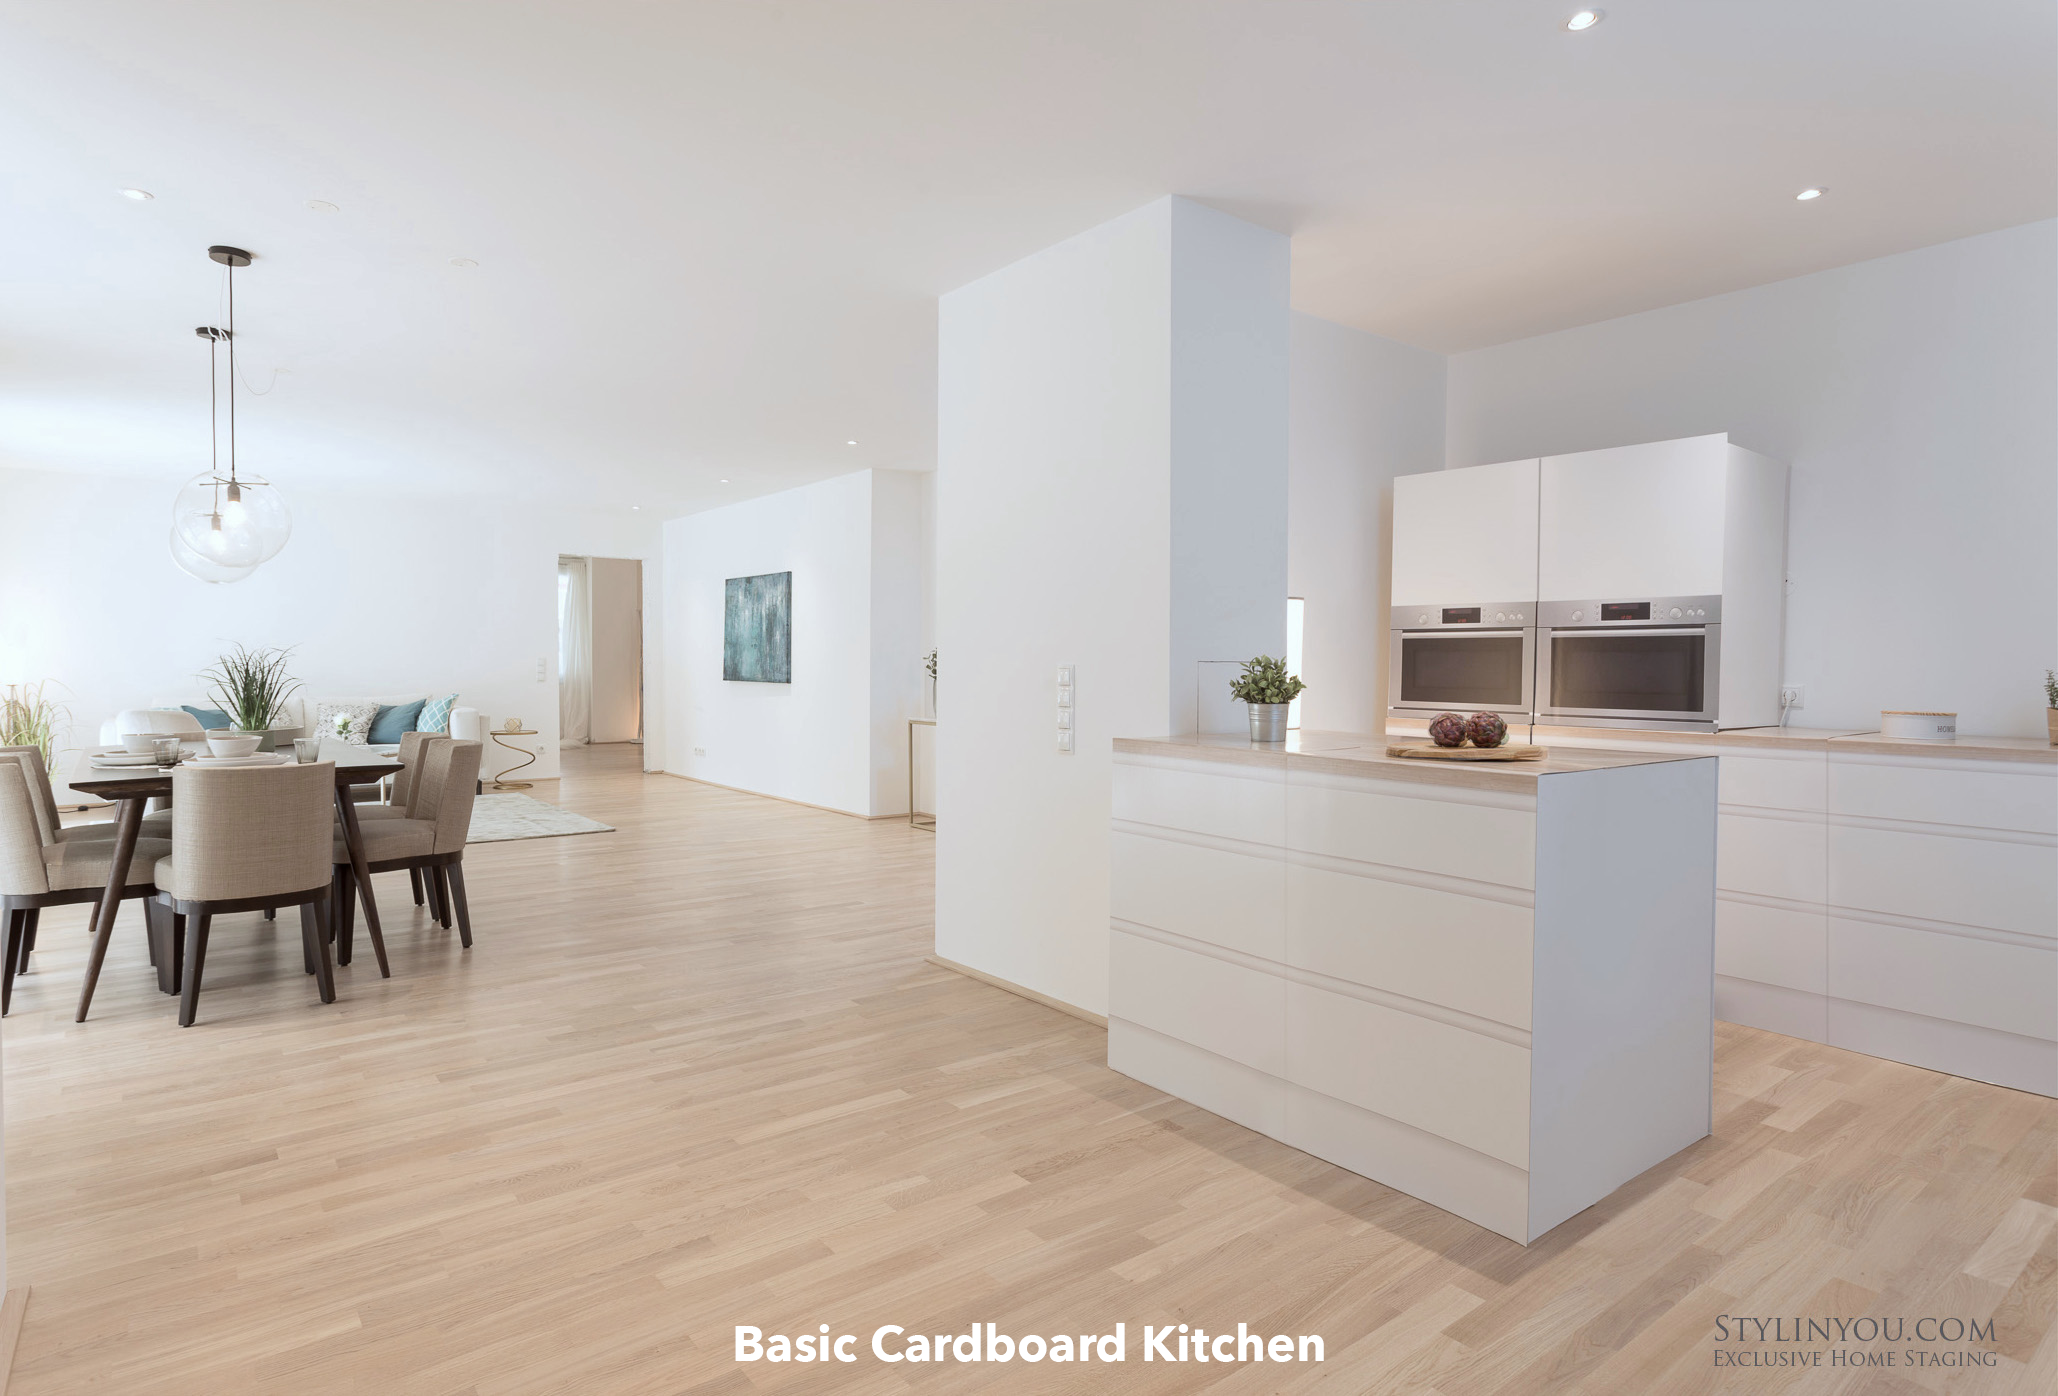 CUBIQZ Basic Cardboard Kitchen for Home Staging